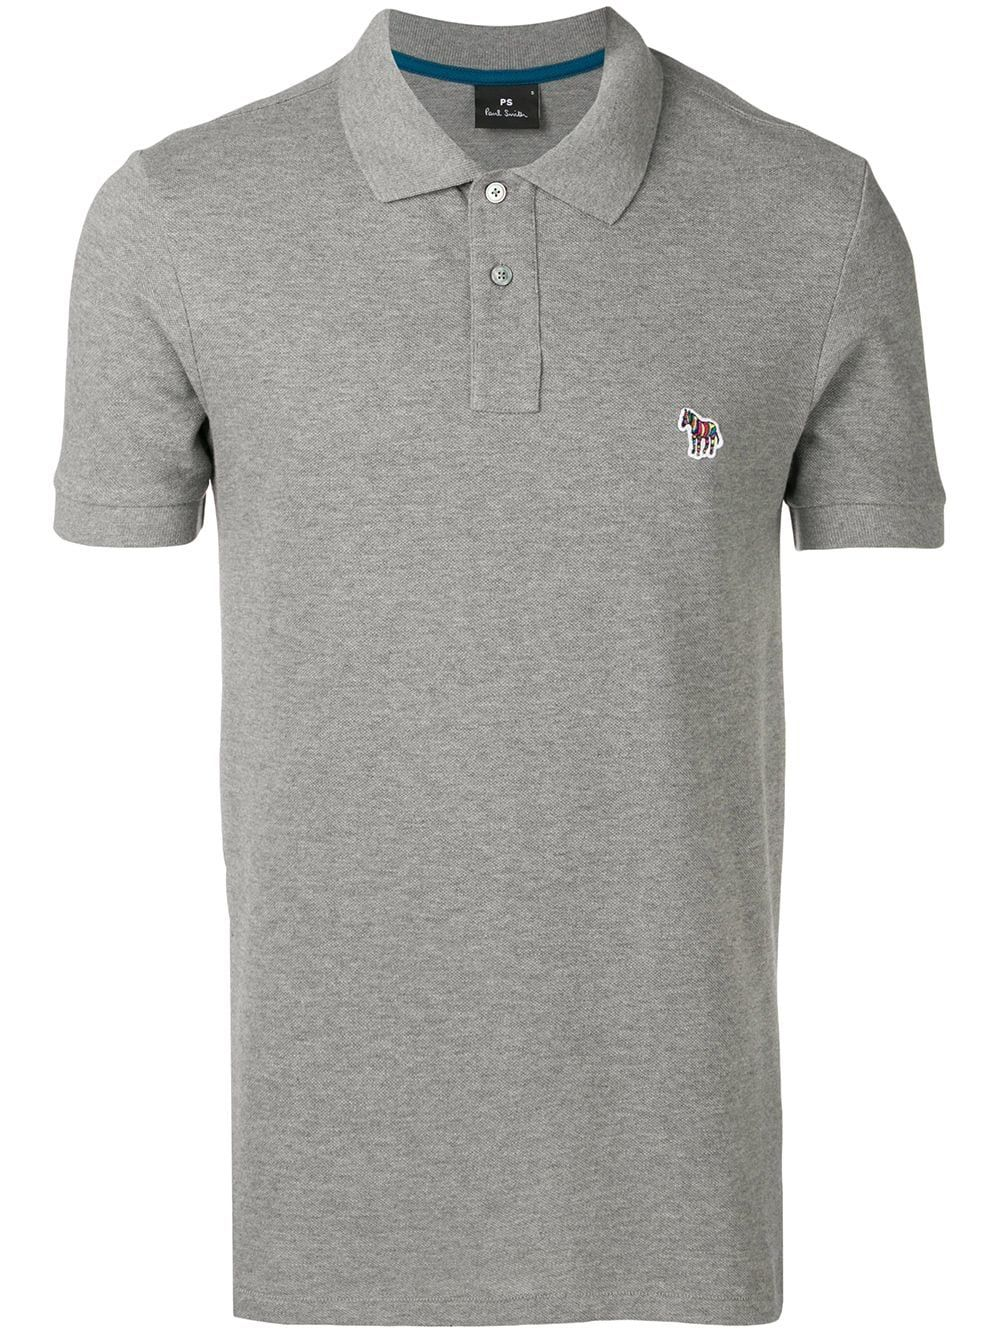 PS BY PAUL SMITH PS BY PAUL SMITH ZEBRA LOGO POLO SHIRT - GREY.   psbypaulsmith  cloth 143724f9753e